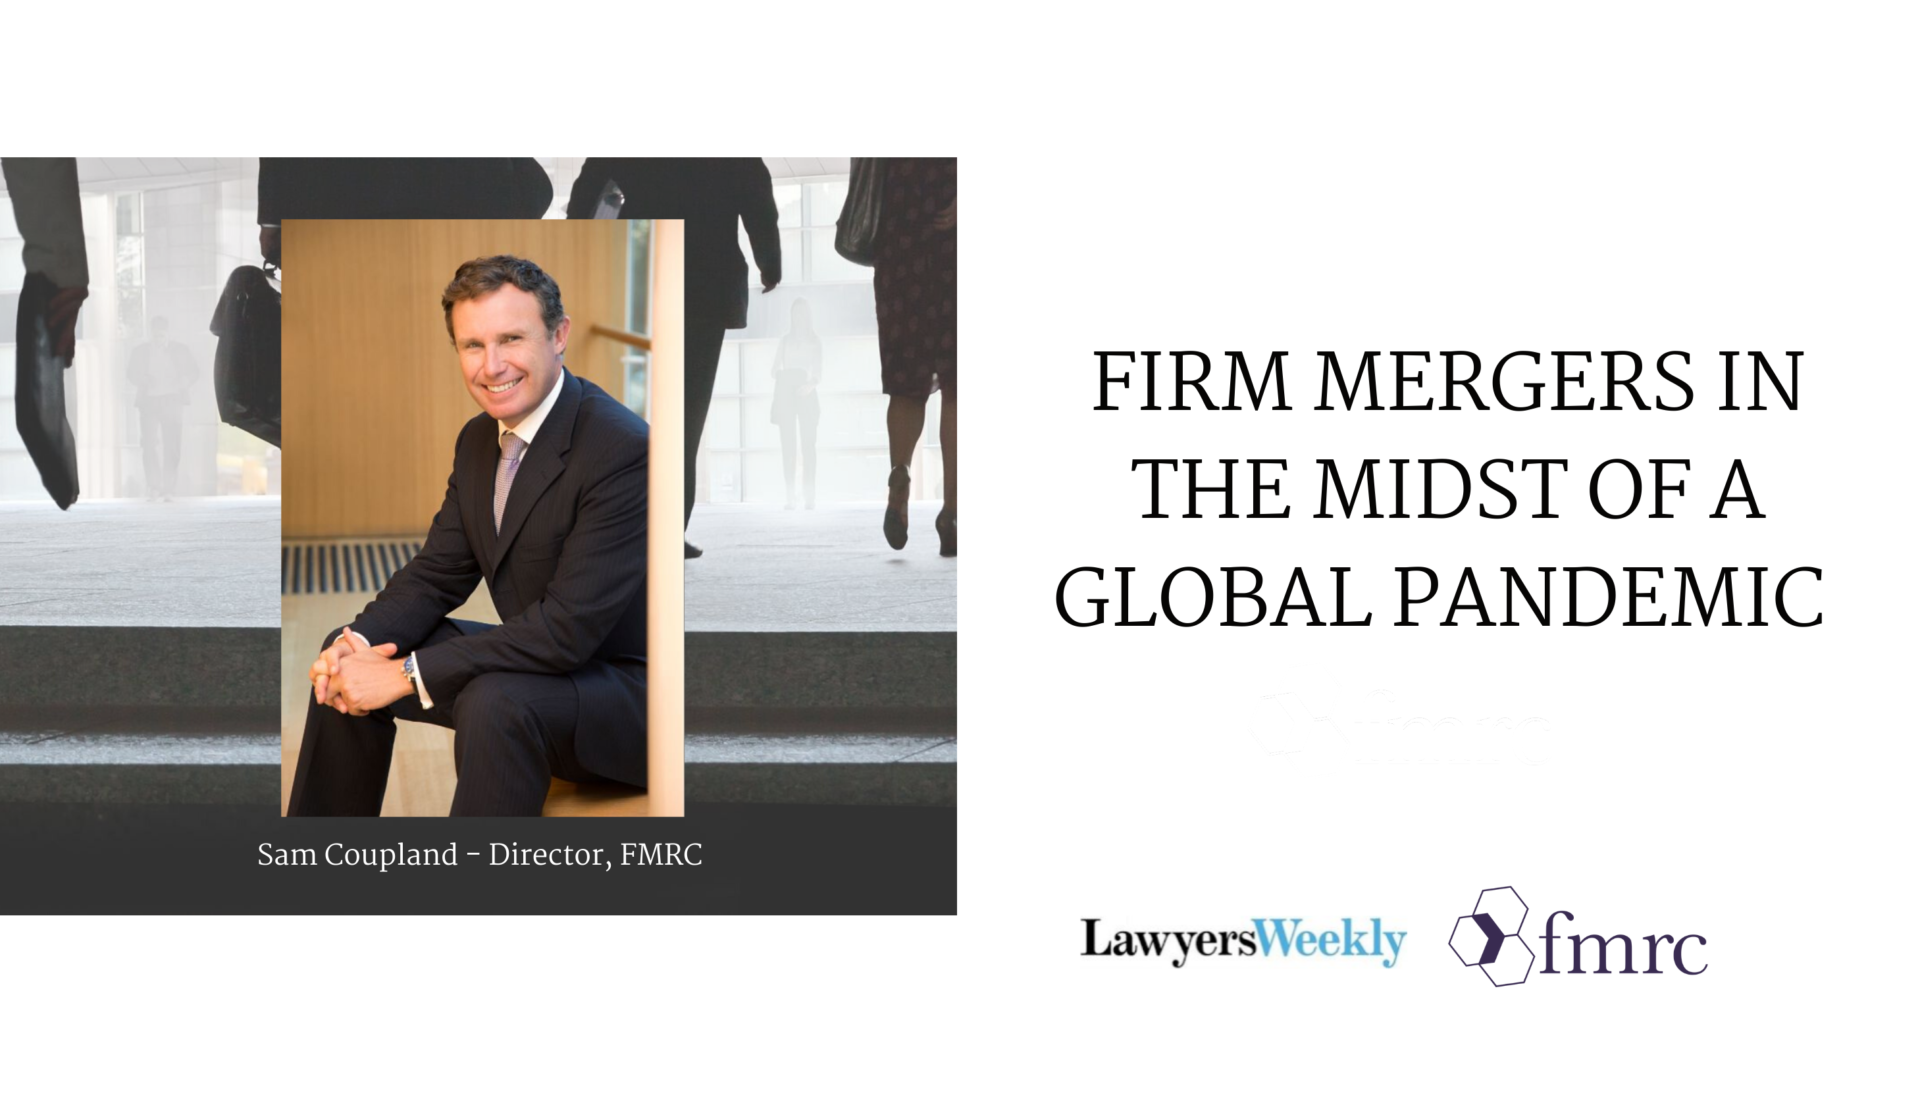 Firm Mergers in the Midst of a Global Pandemic